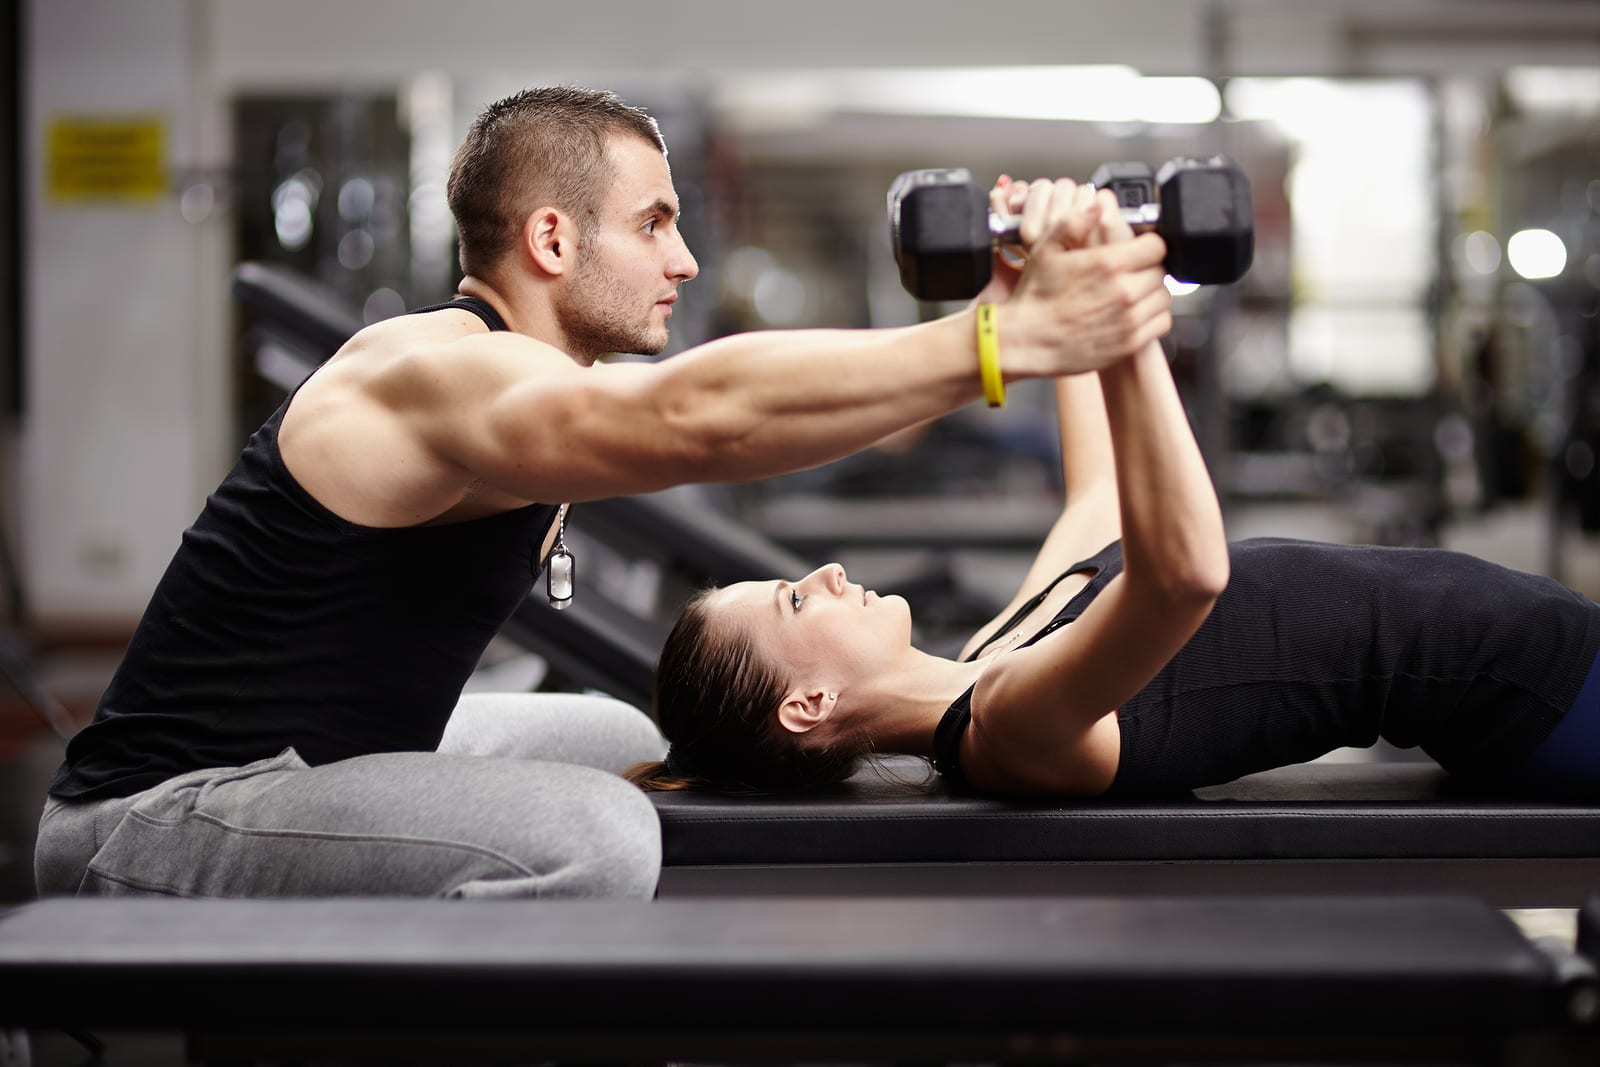 How to earn a £100k a year as a personal trainer